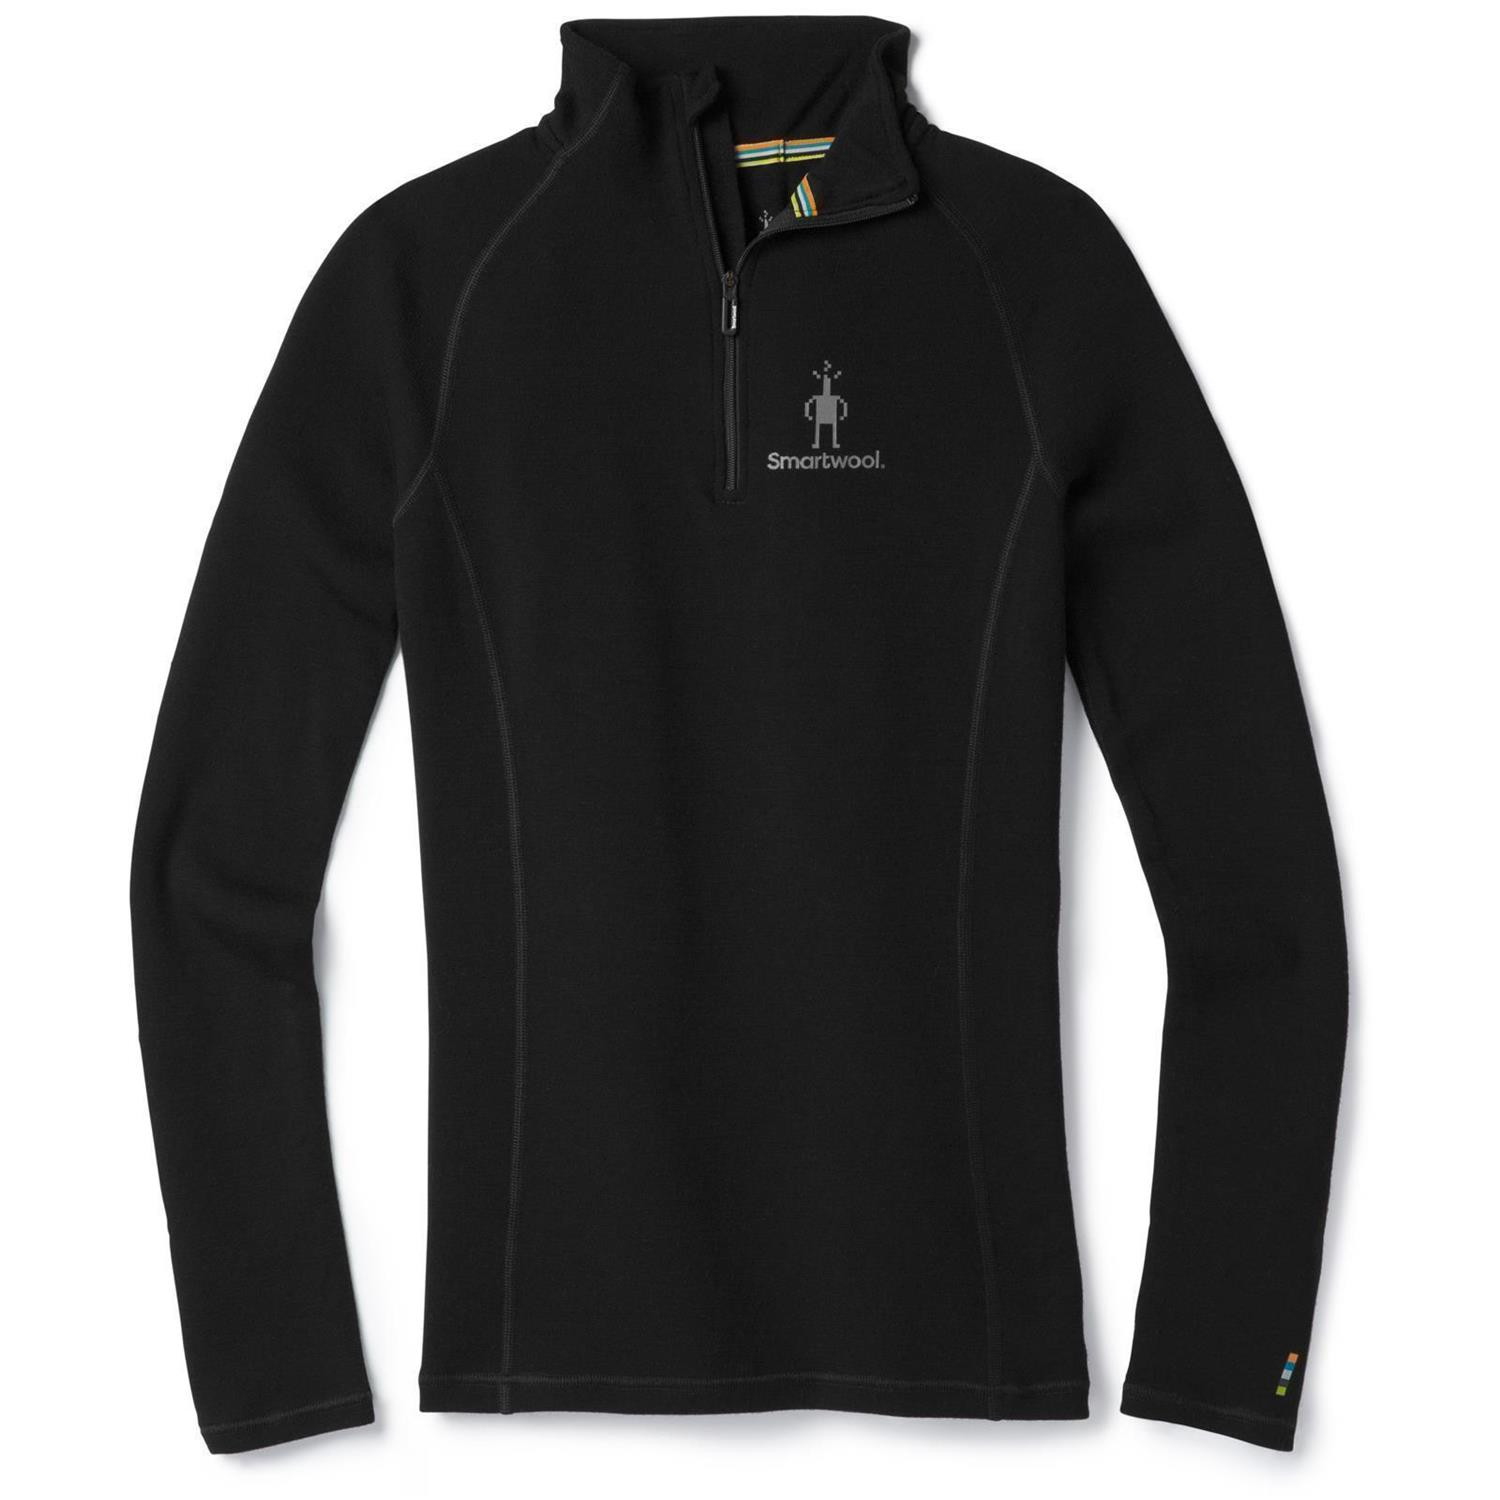 Smartwool Ws Merino 200 Baselayer 1/4 Zip